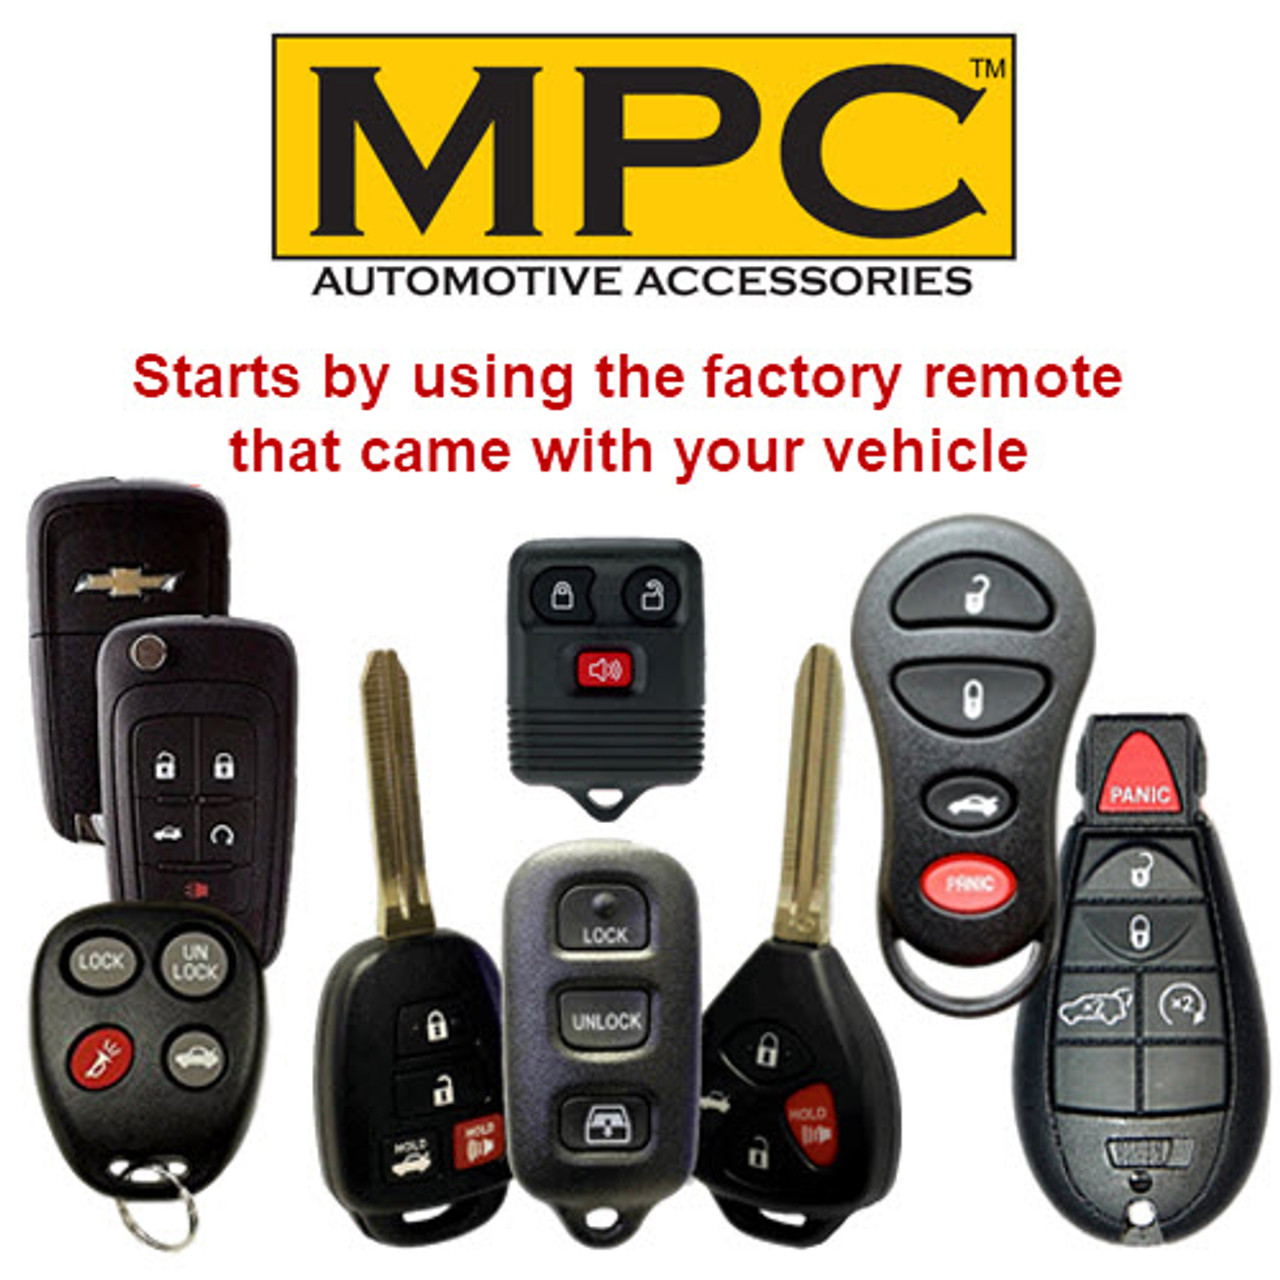 MPC OEM Remote Activated Remote Start Kit For 2014-2017 Infiniti QX80 -Push-to-Start